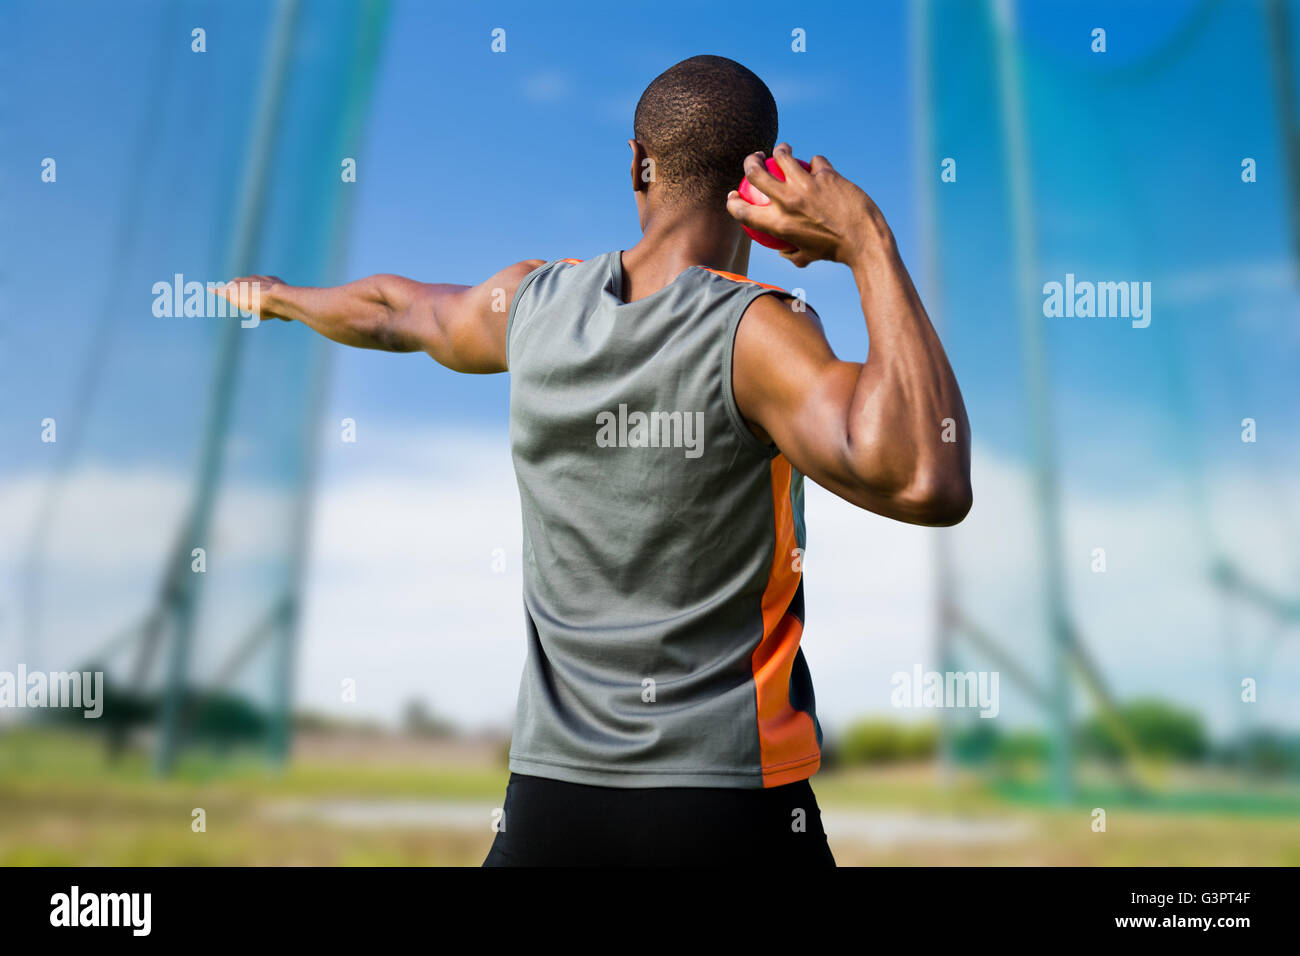 Composite image of rear view of athletic man preparing the shot put Stock Photo